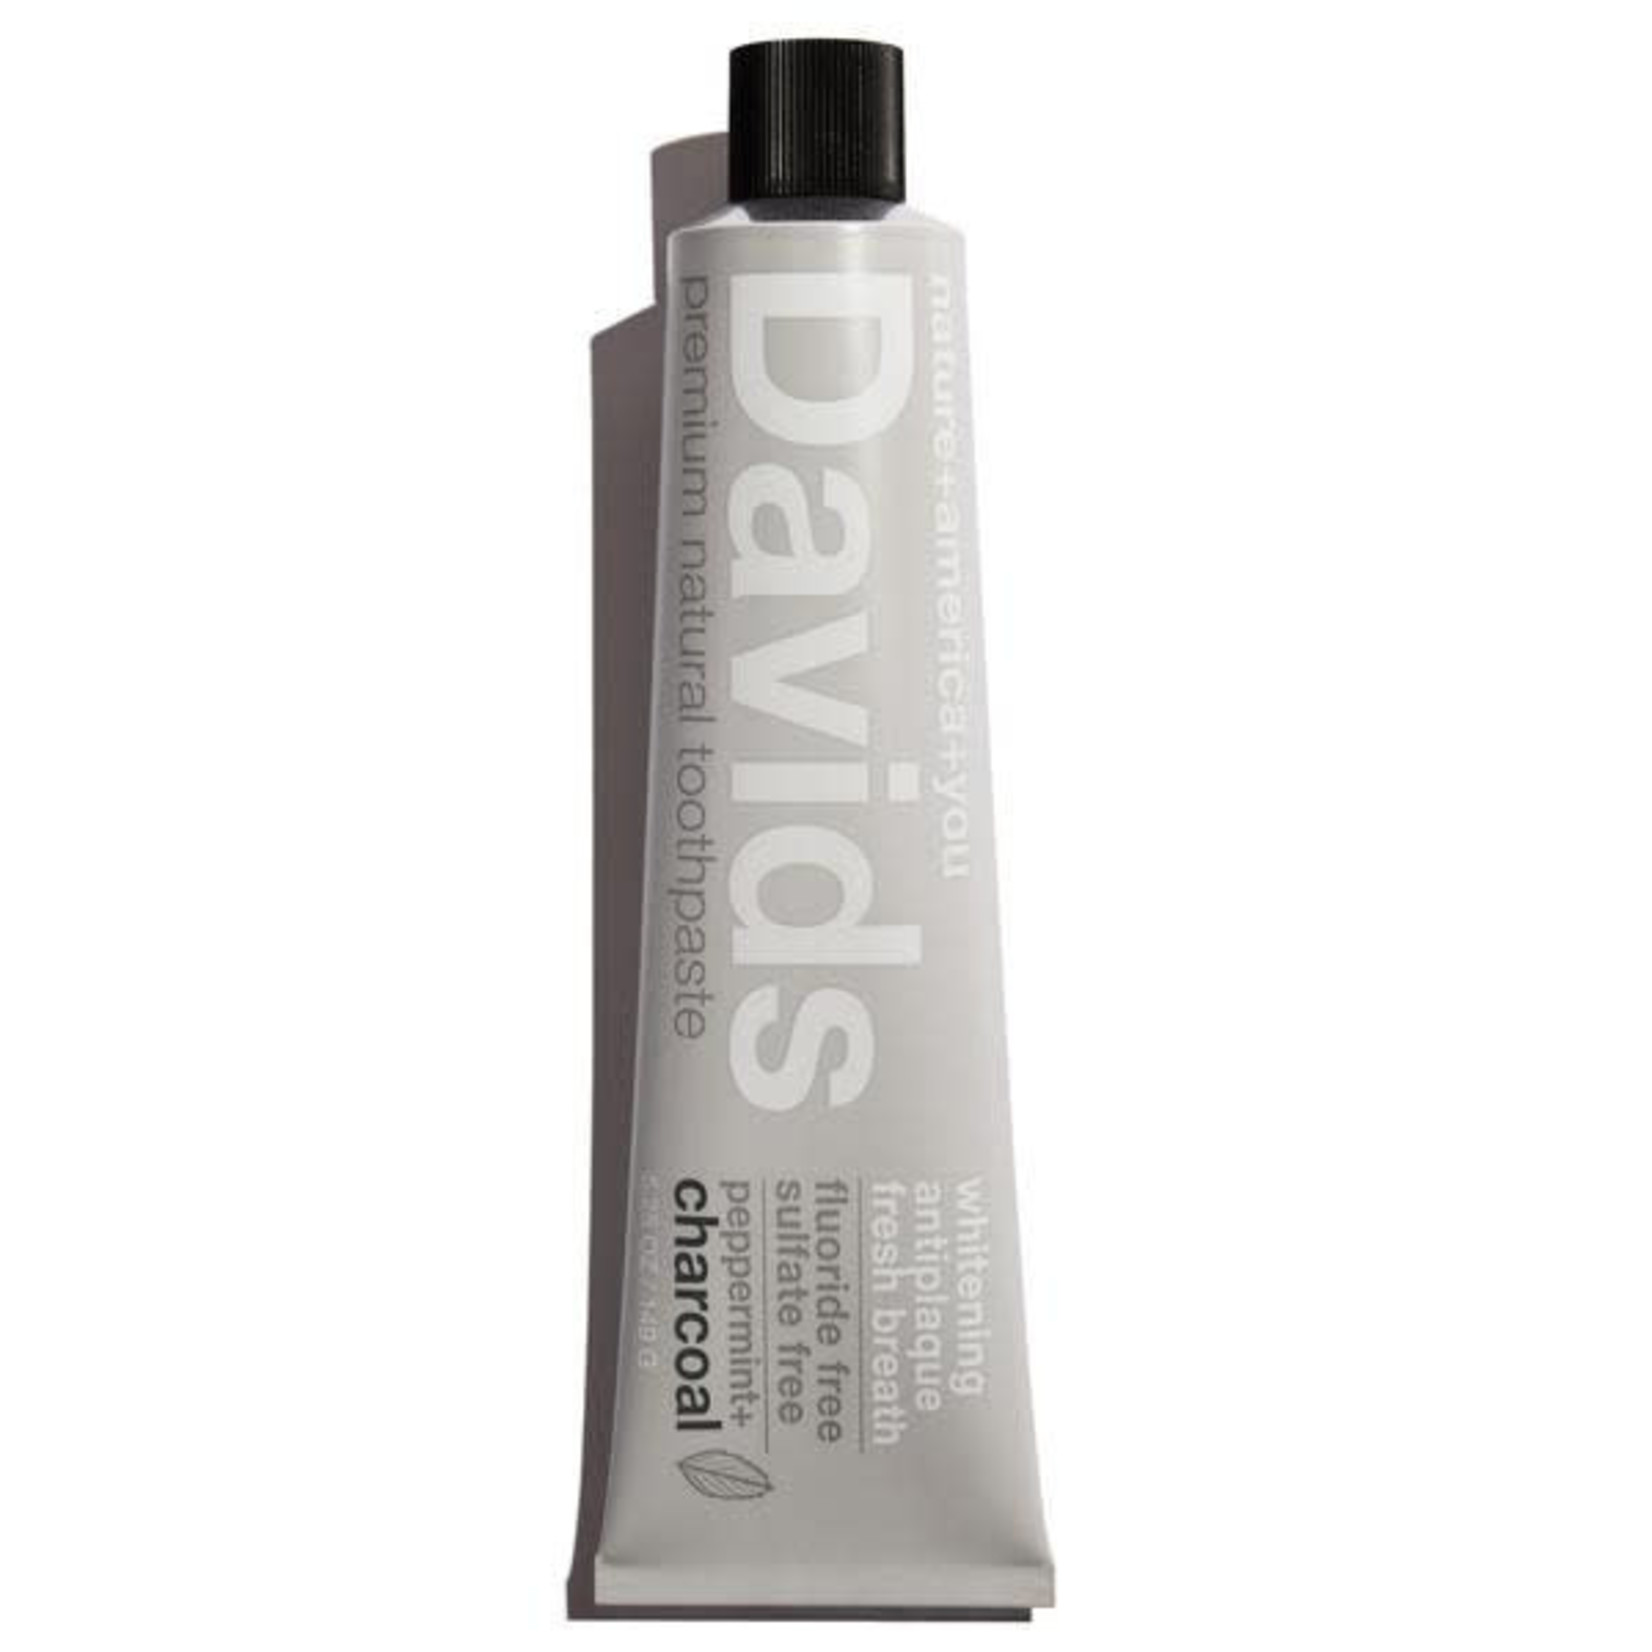 DAVIDS PREMIUM NATURAL TOOTHPASTE - PEPPERMINT + CHARCOAL